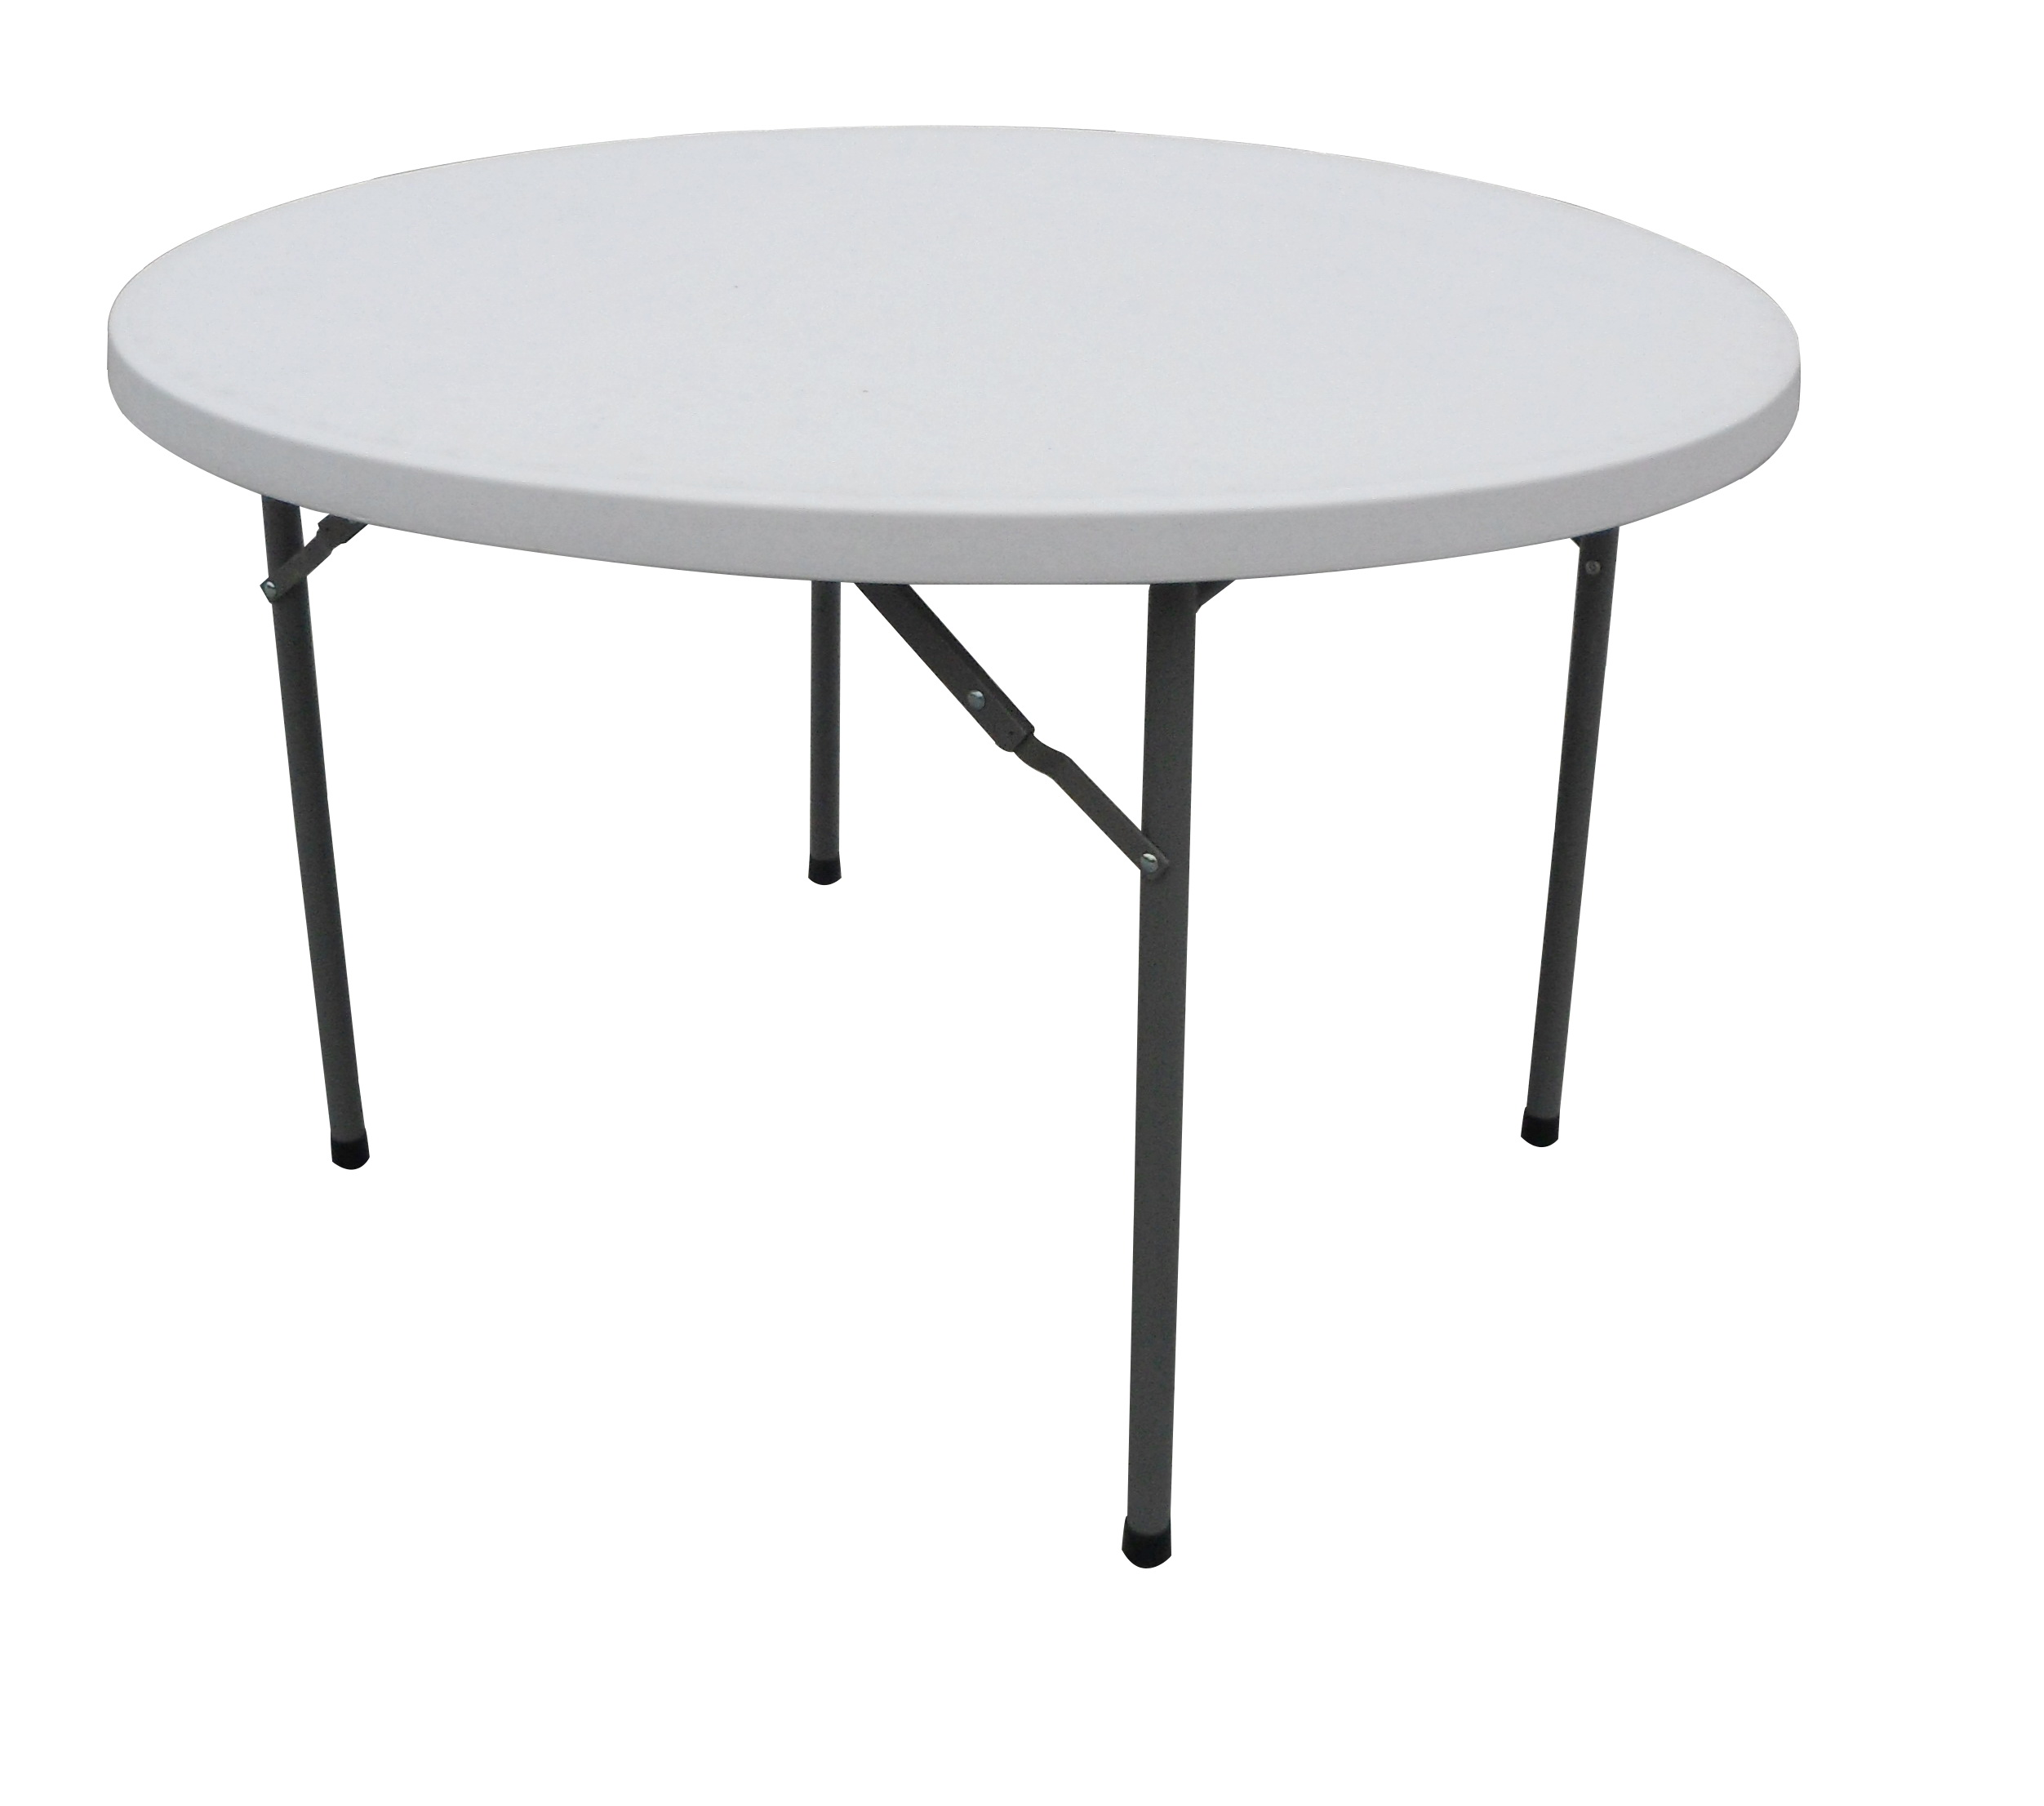 1 8m Heavy Duty Plastic Moulded Round Table Melbourne